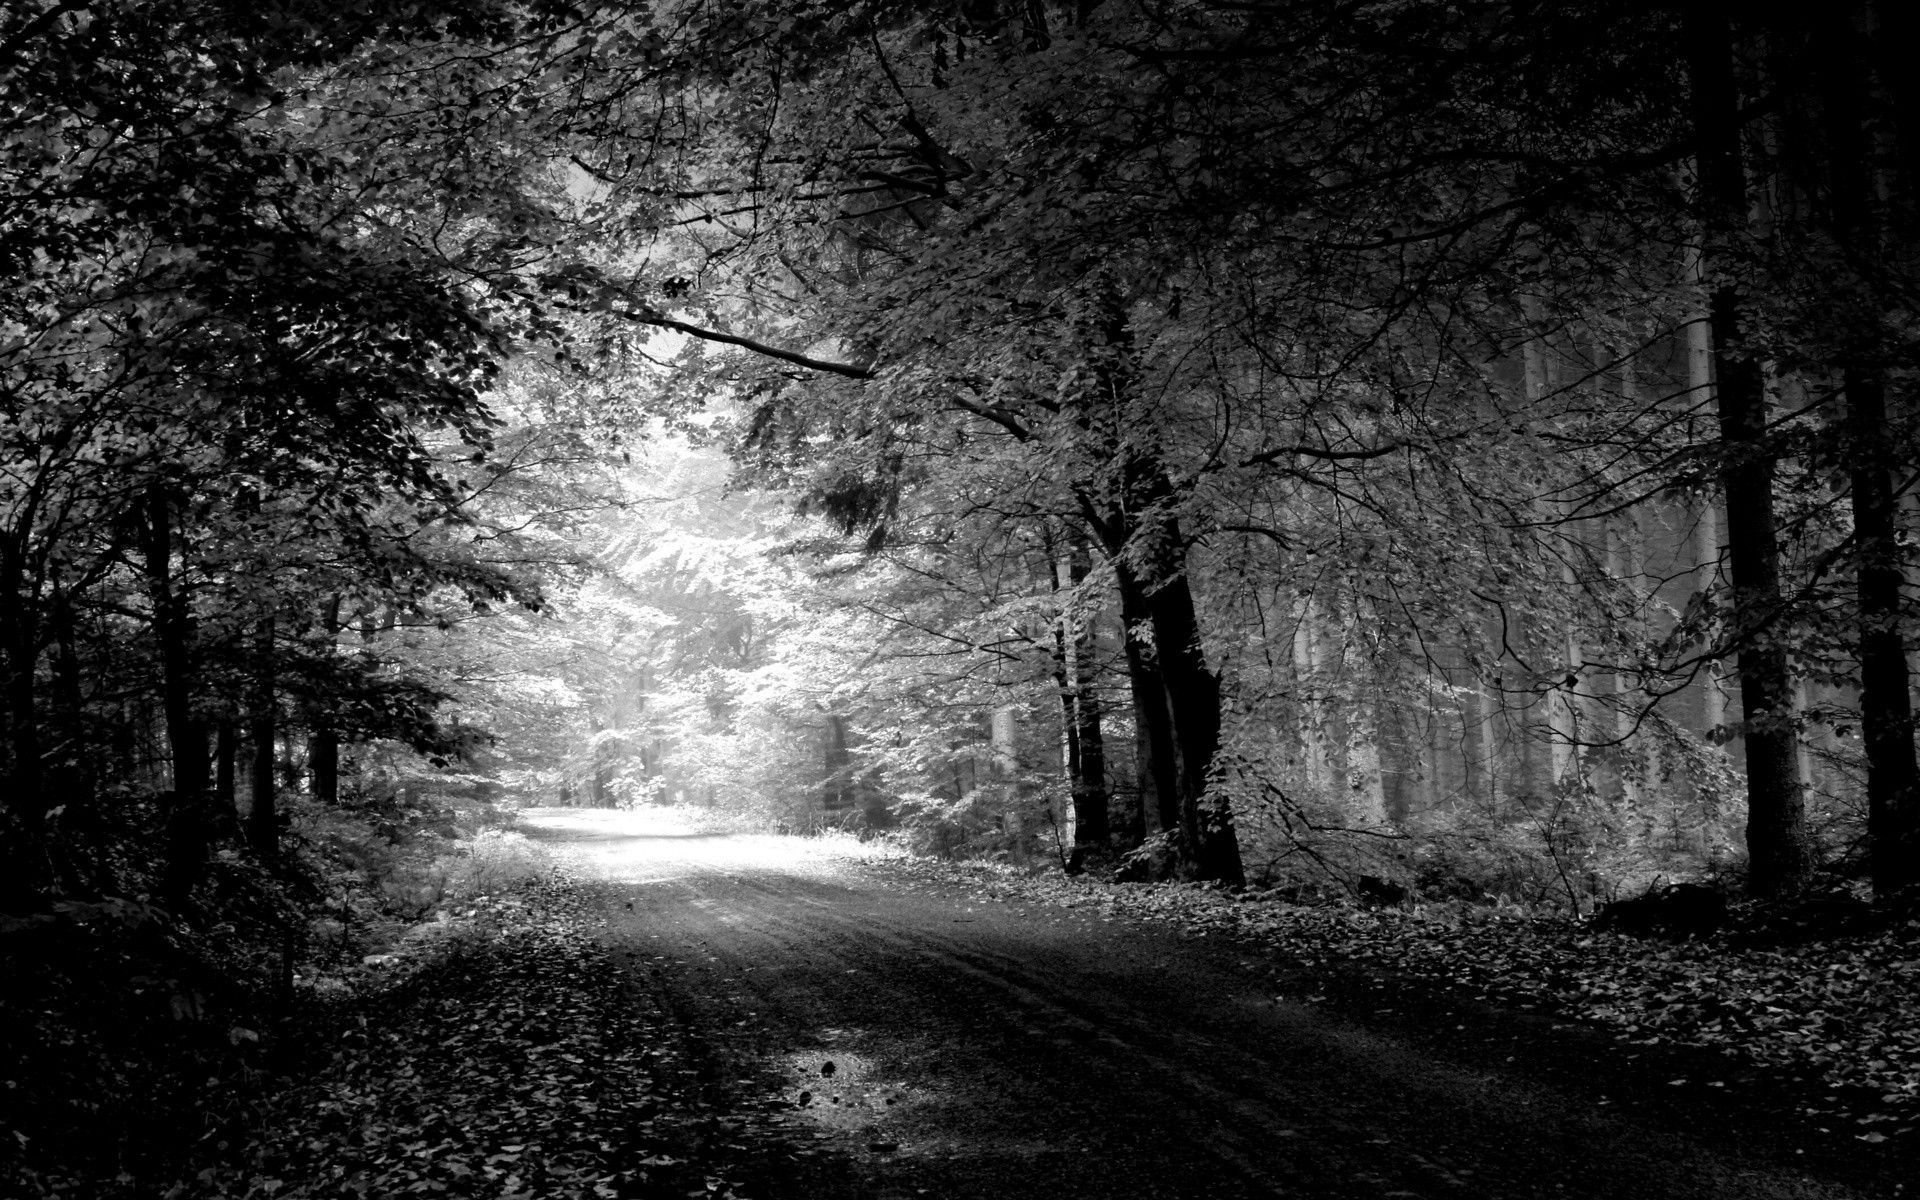 Black In White Nature Hd Wallpapers For Your Desktop Free Download Beautiful Roads Forest Road Beautiful Nature